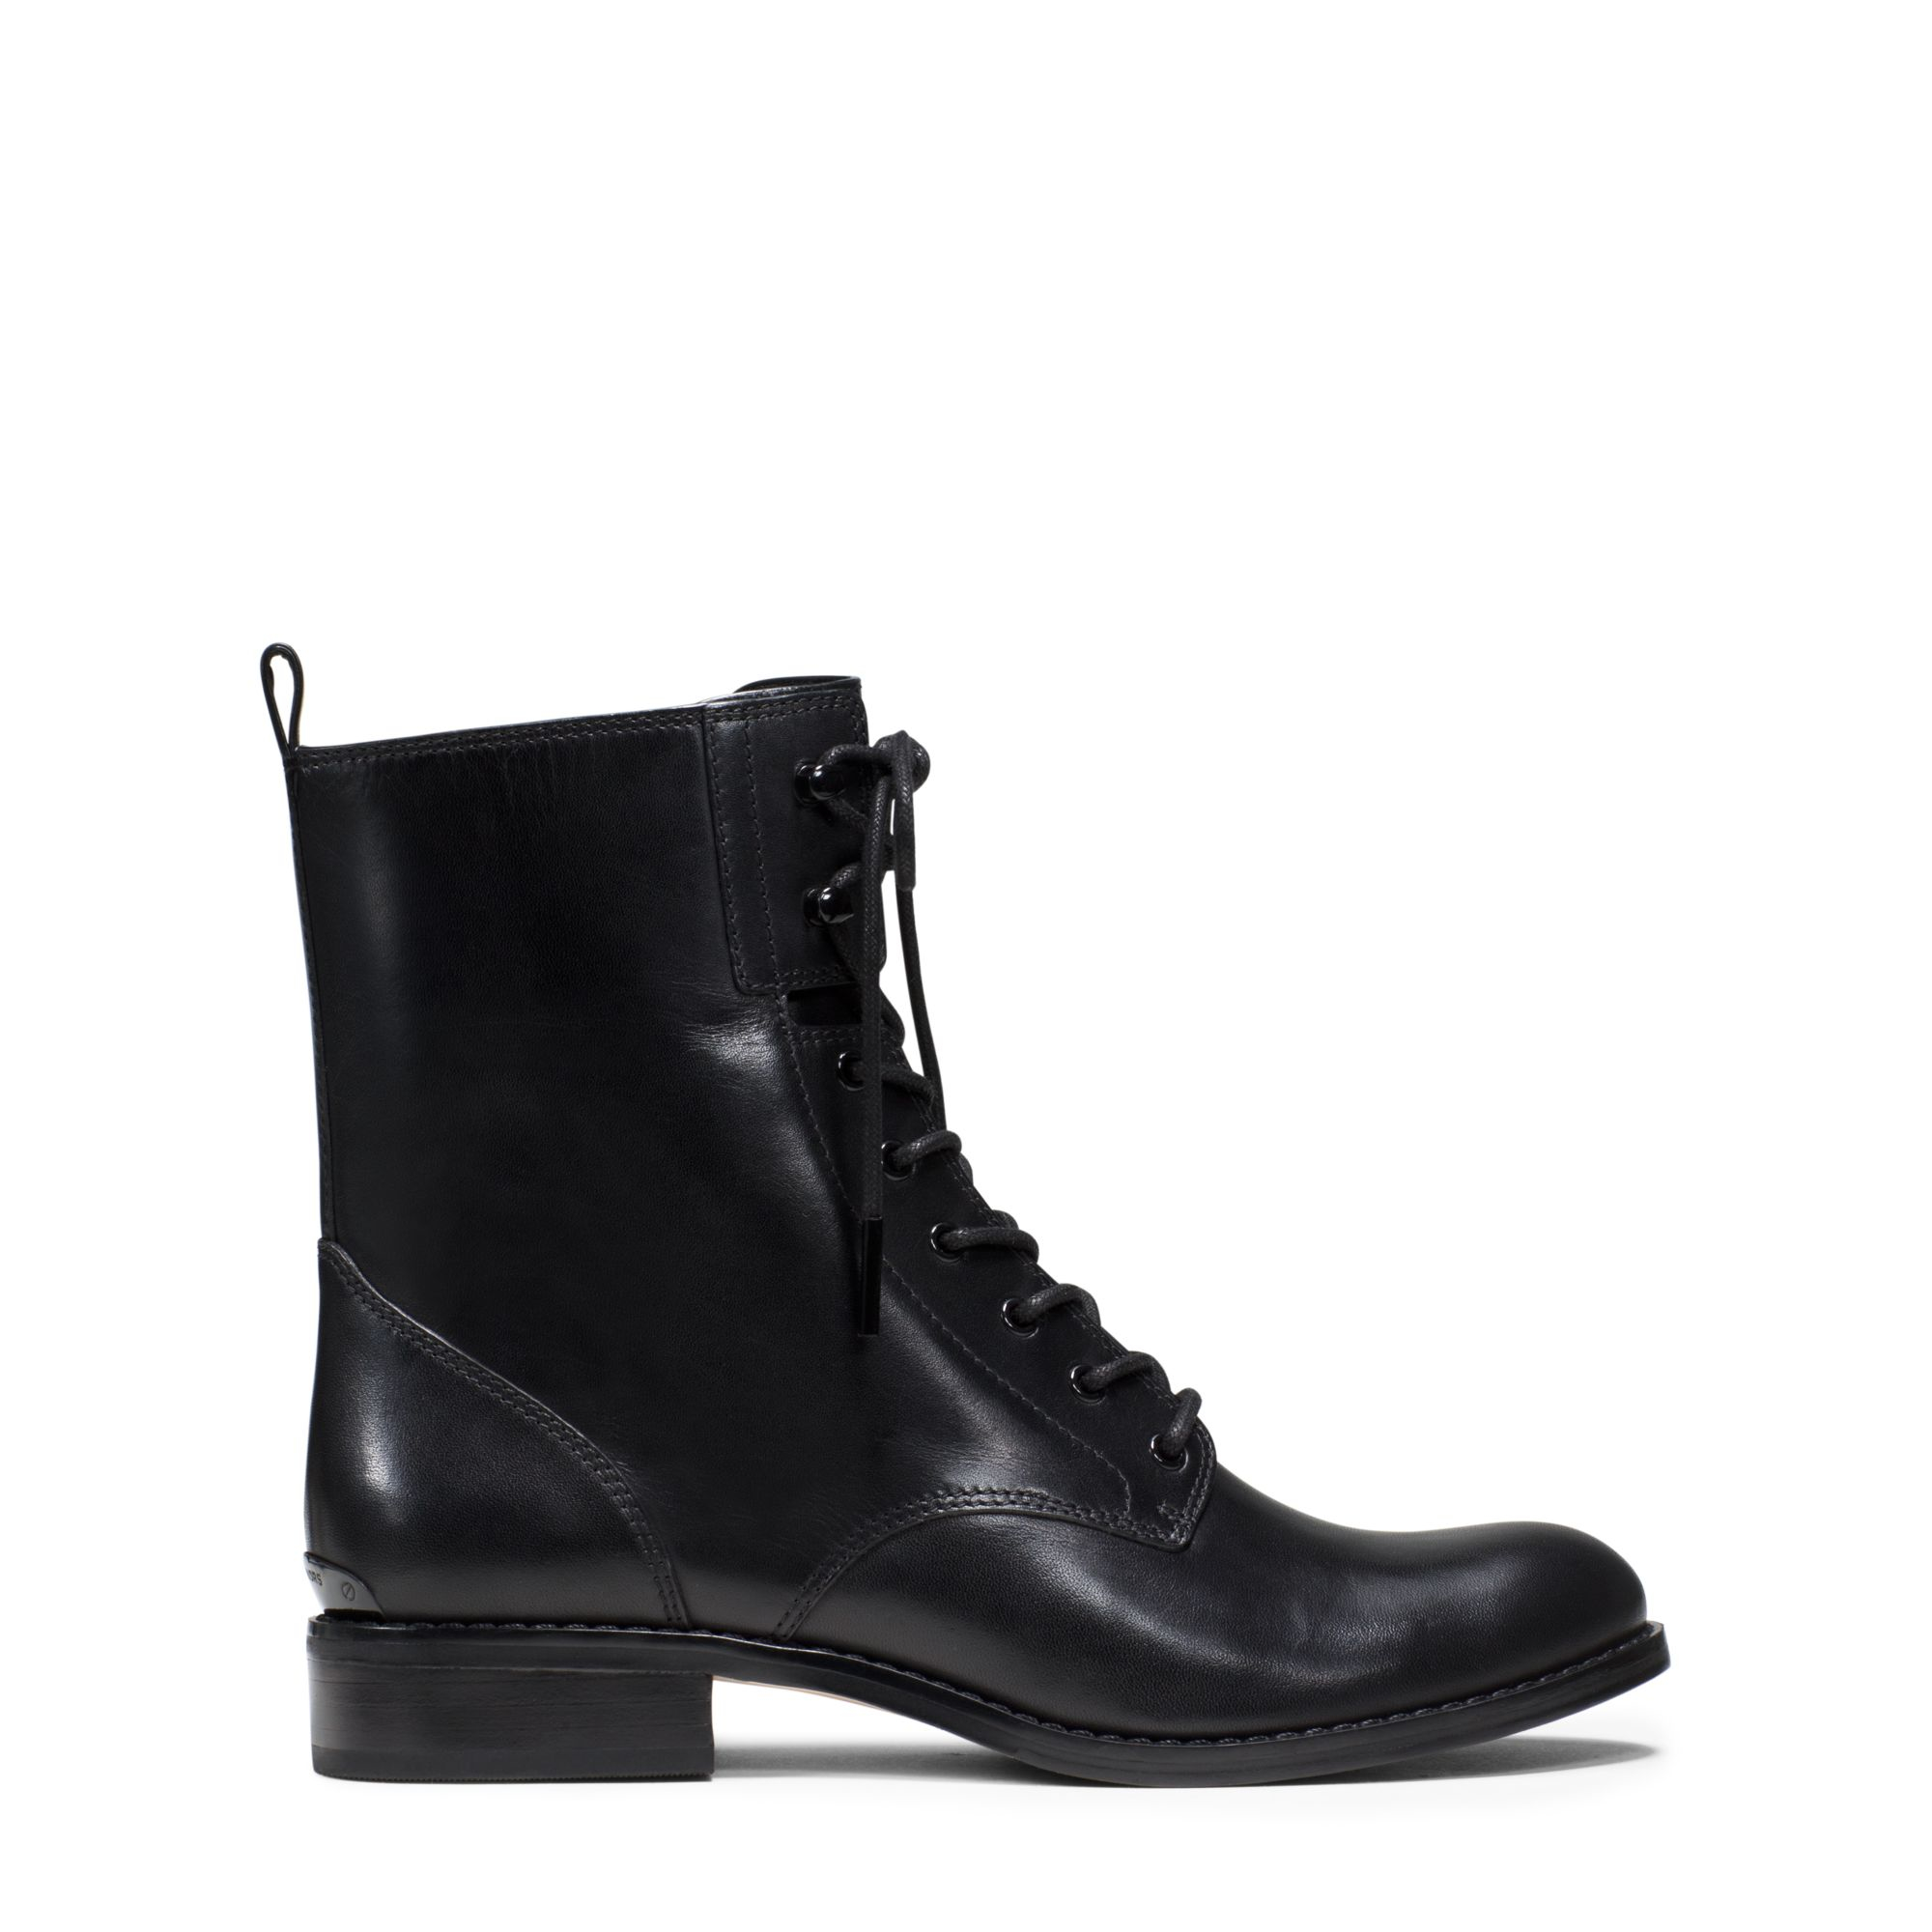 Michael kors Norwood Lace-up Leather Ankle Boot in Black | Lyst